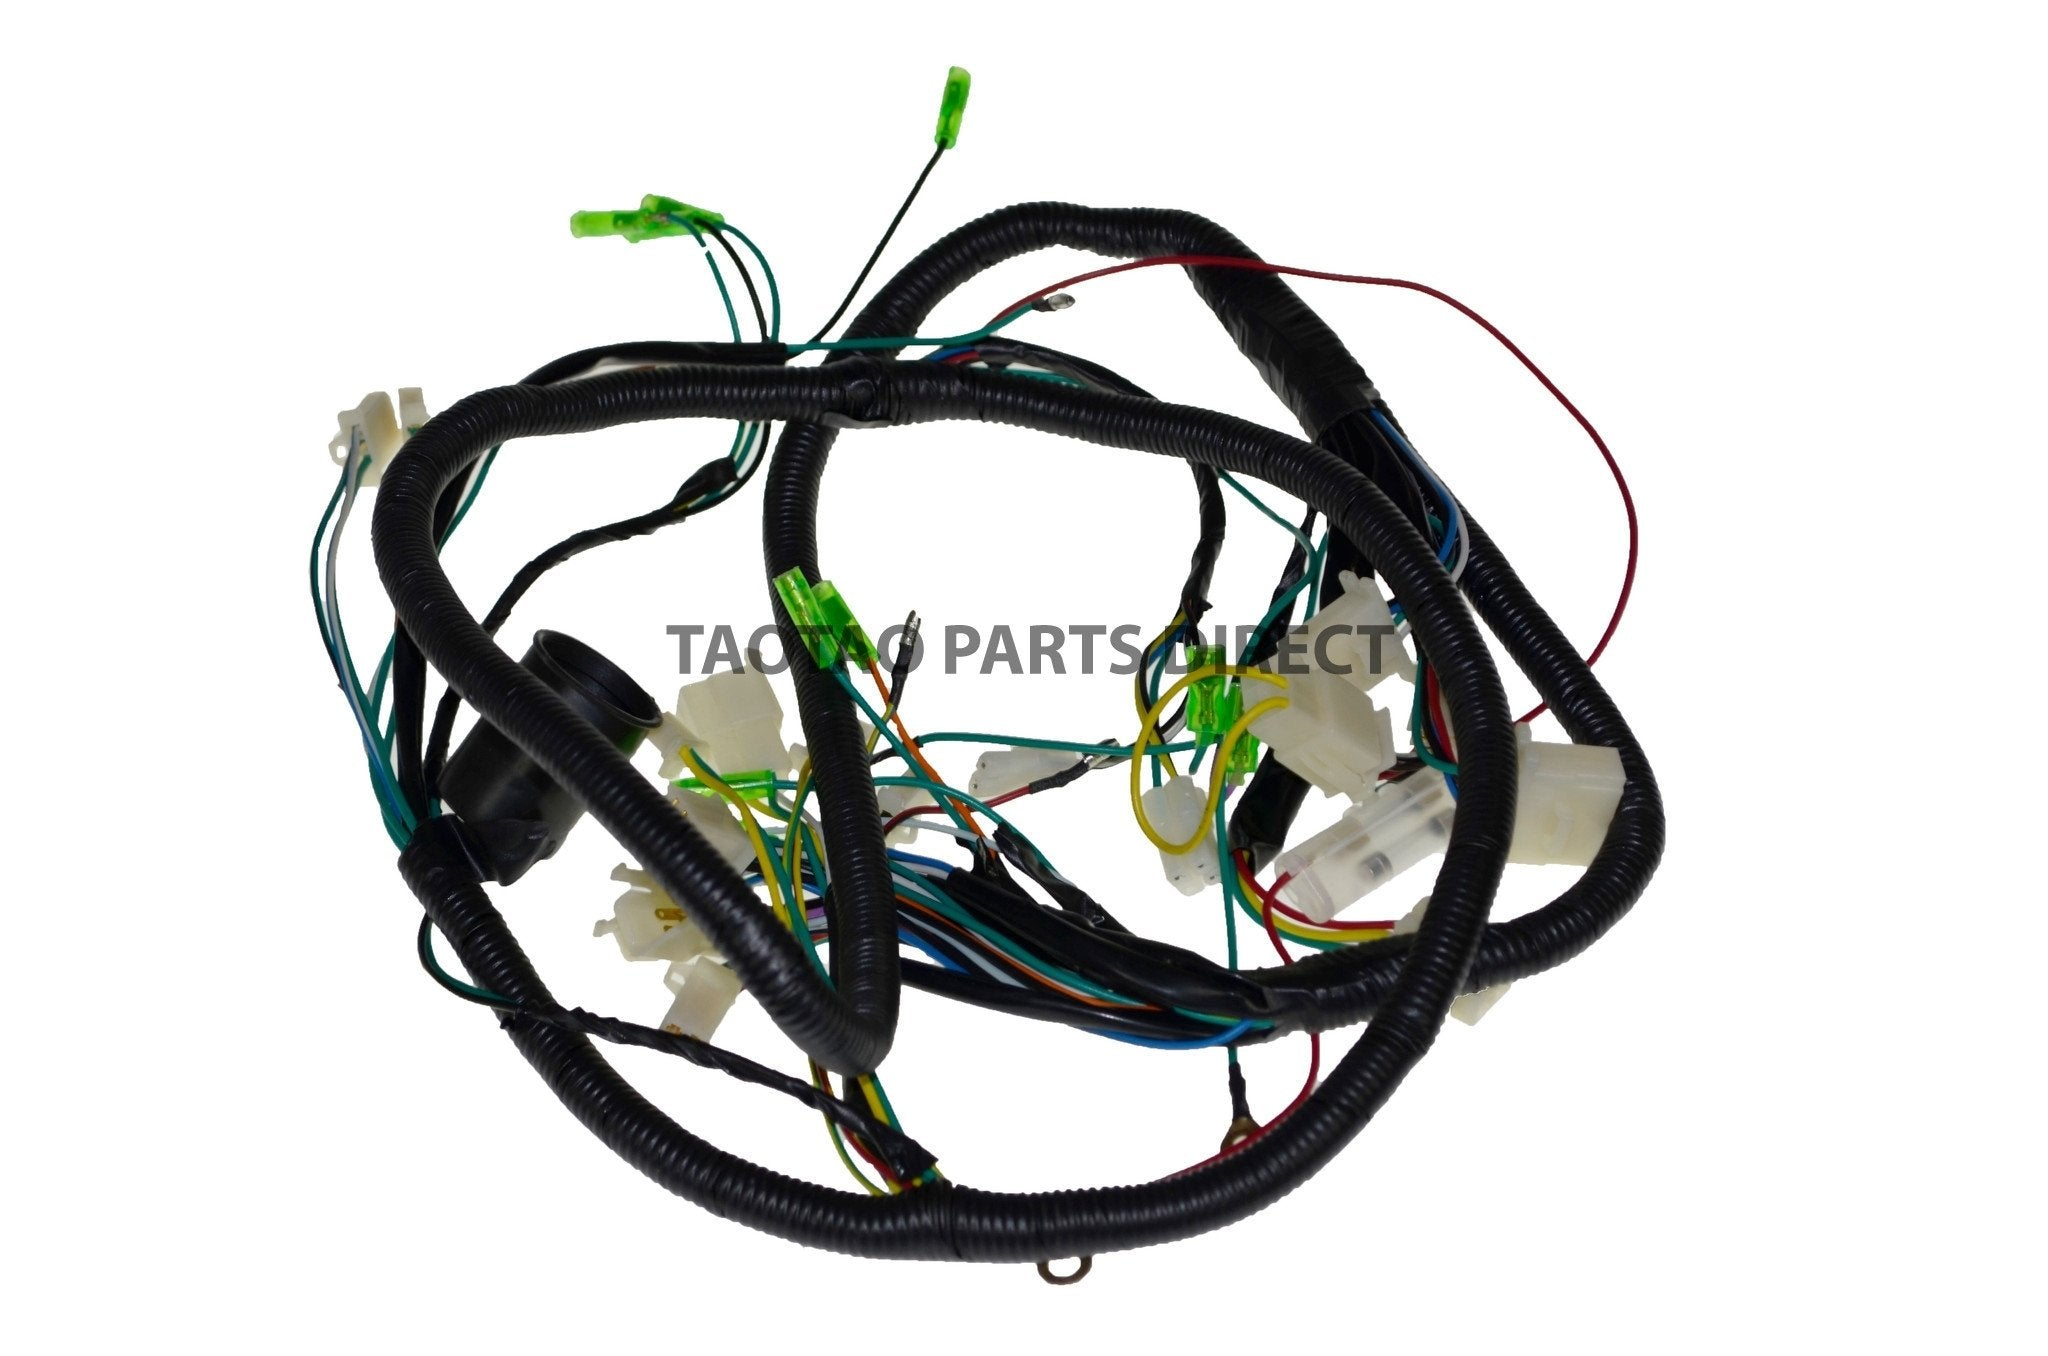 thunder 50 wire harness Alpine Stereo Harness